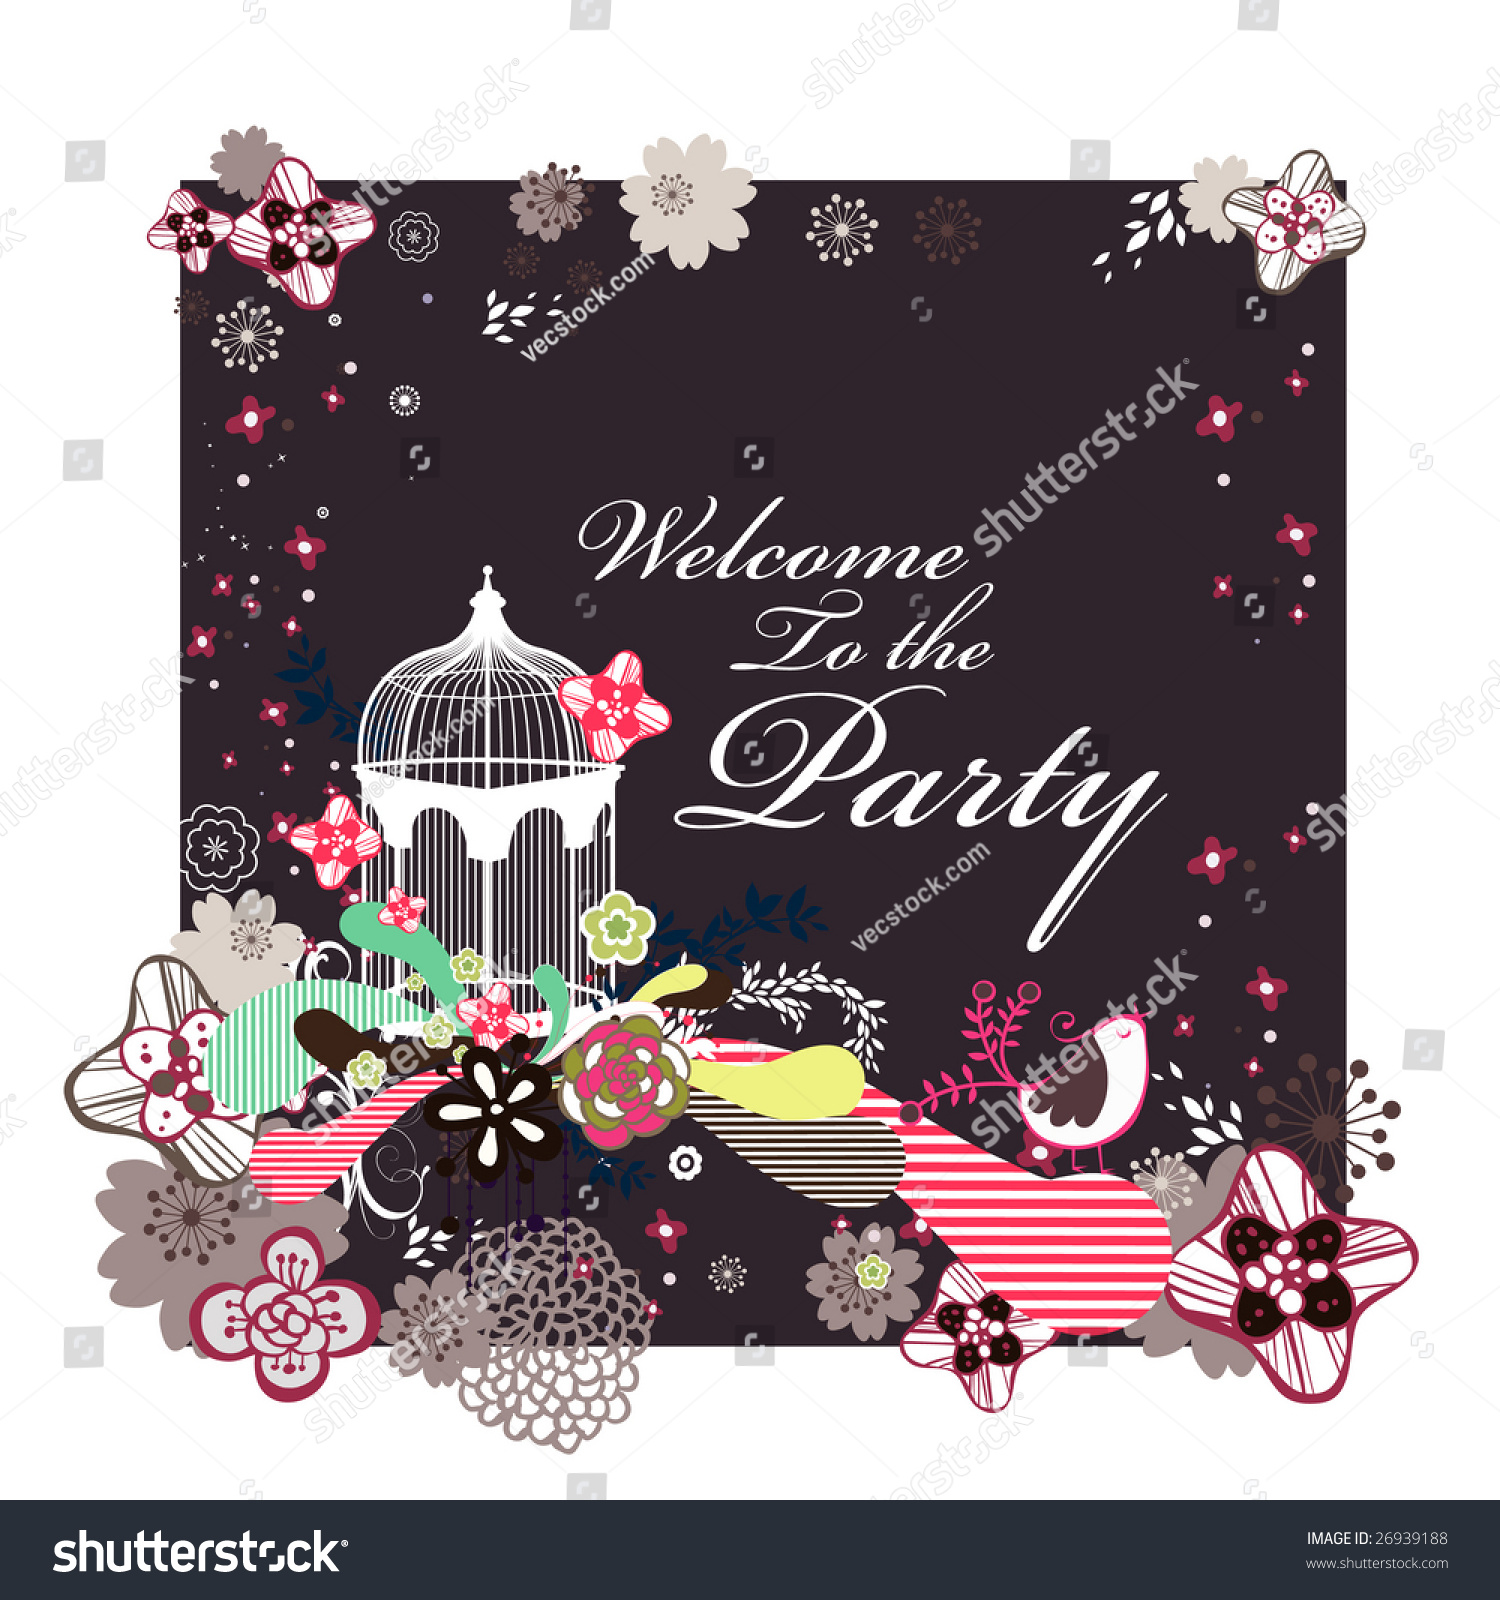 welcome party invitation card stock vector shutterstock welcome party invitation card